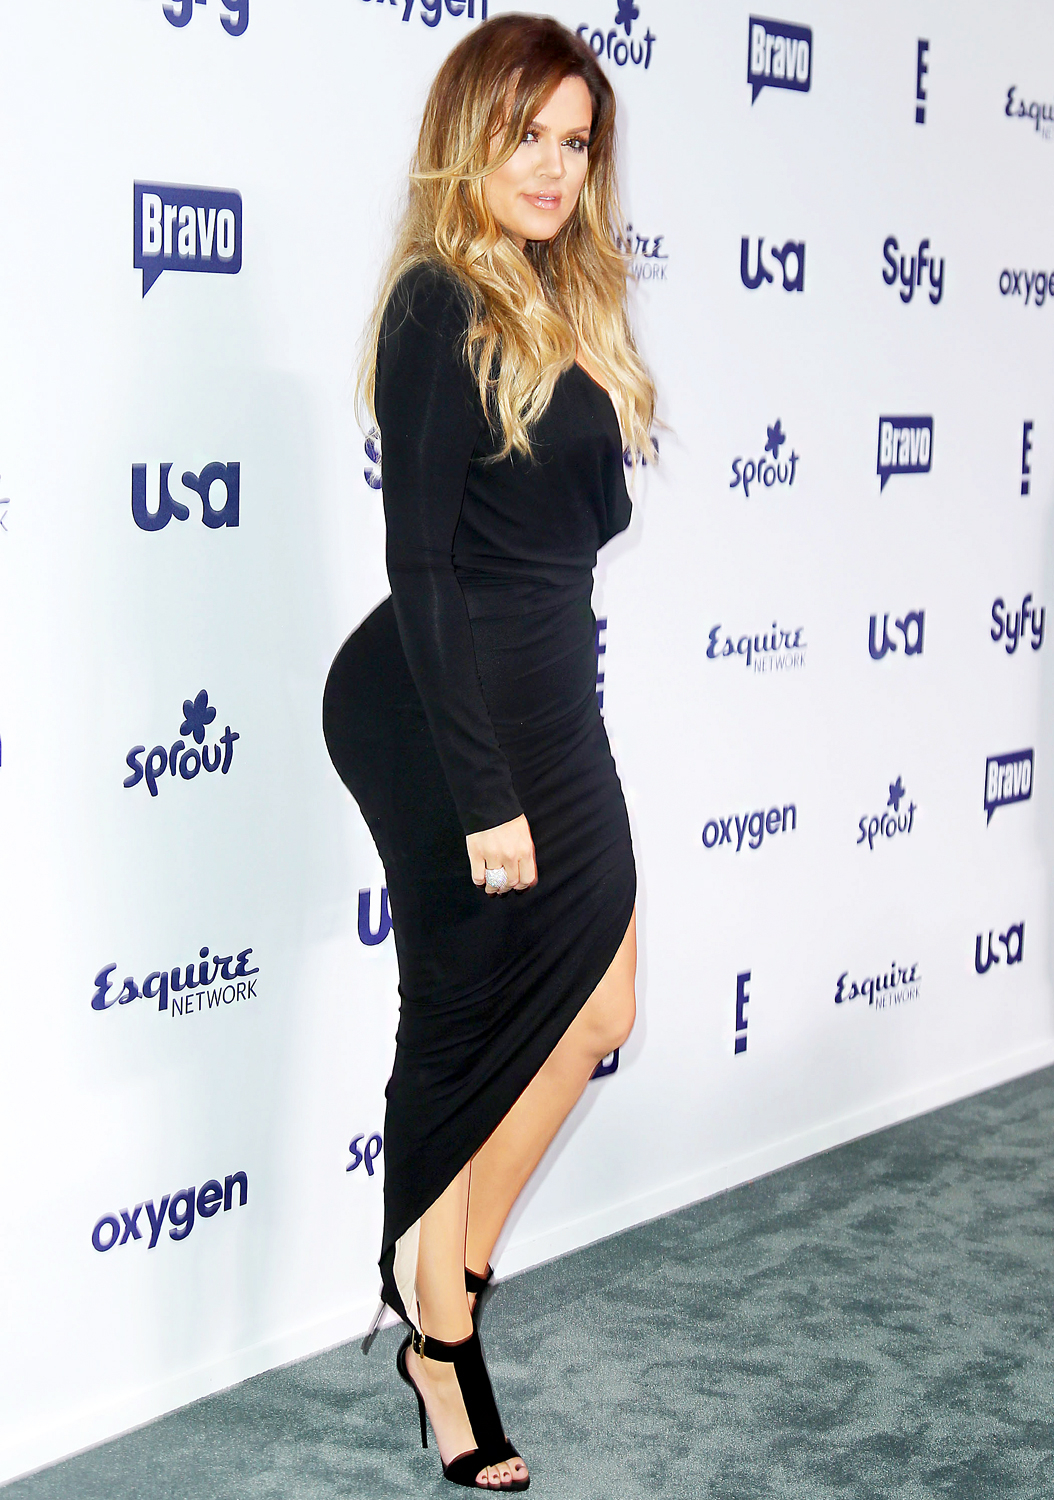 """Khloé, here, at the NBC Universal Upfronts in NYC in May 2013, is open about the hard work that goes into maintaining her healthy figure, regularly sharing photos of her workouts. """"I hate not being consistent in the gym,"""" she captioned a pair of photos of herself lifting weights in May 2014."""